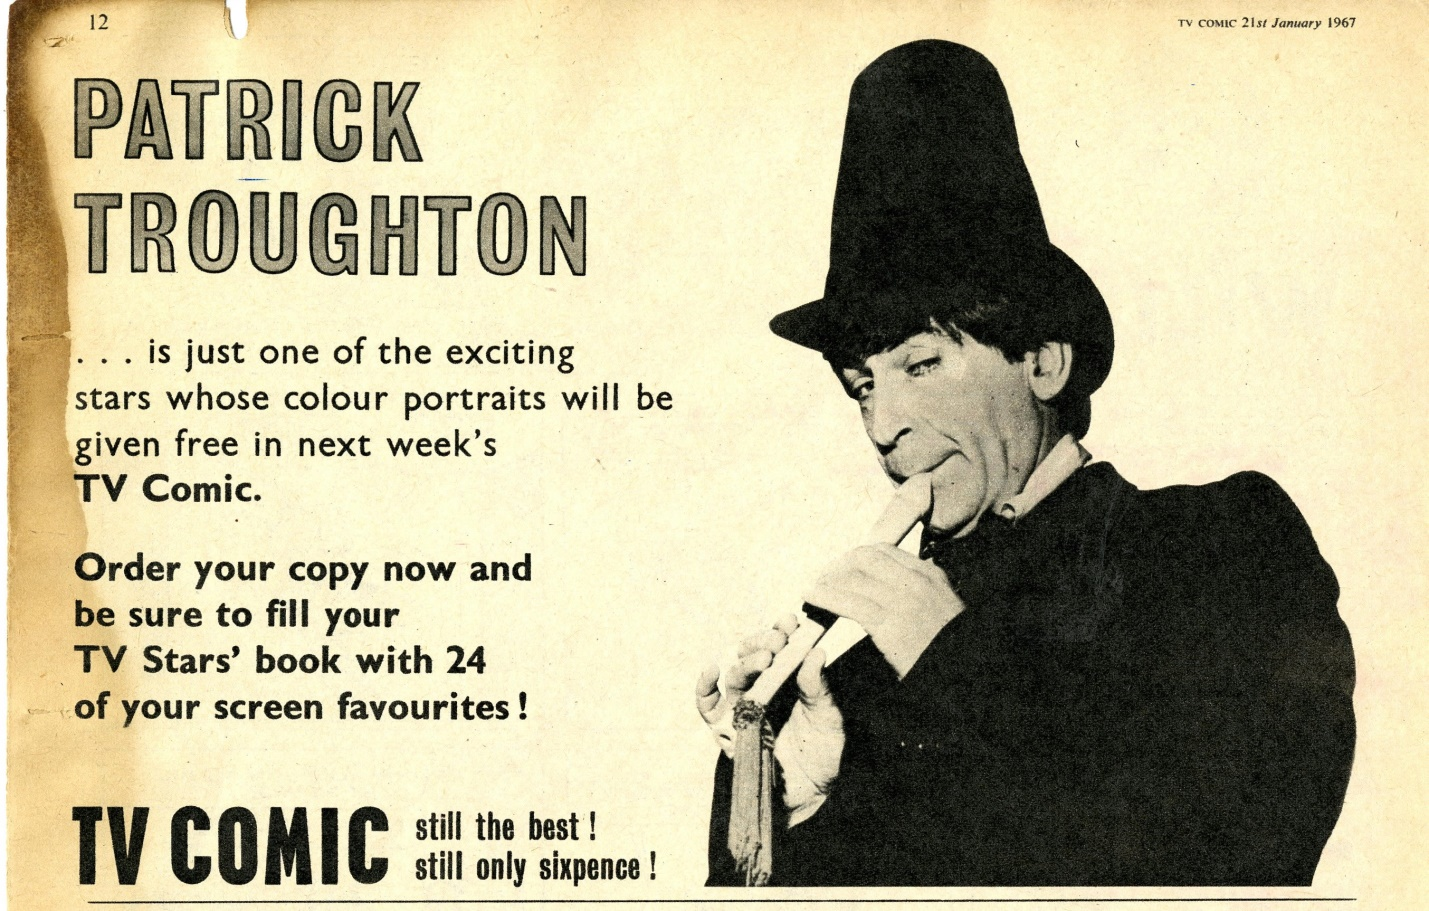 Preview of the Patrick Troughton sticker for My Super Book of TV Stars in TV Comic number 788, 21 January 1967